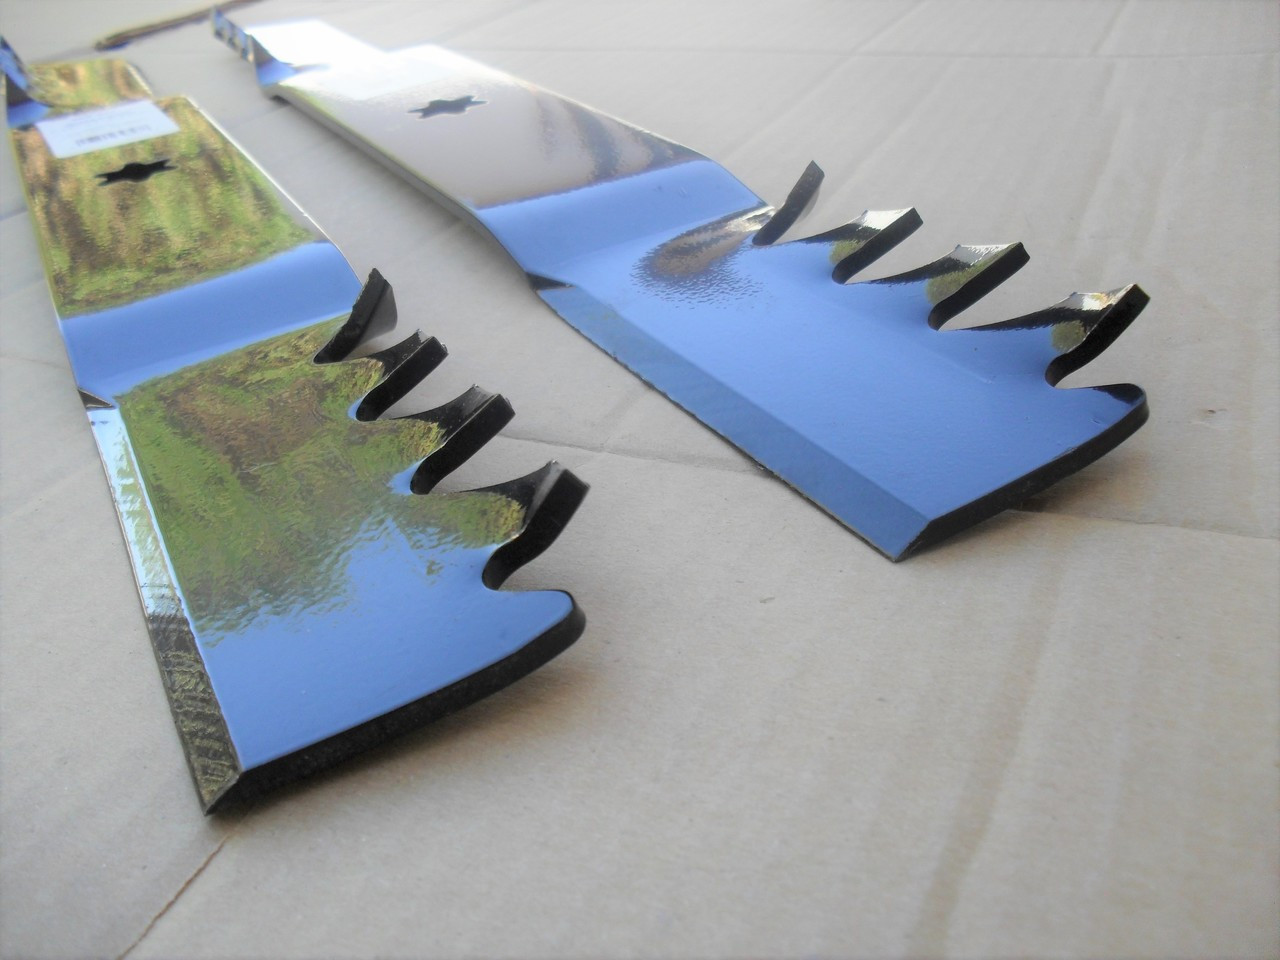 "Mulching Blades for Troy Bilt Bronco, Mustang, Pony, RZT42, 42"" Cut 742-0616, 942-0616, 942-0616A, Made In USA, mulcher"